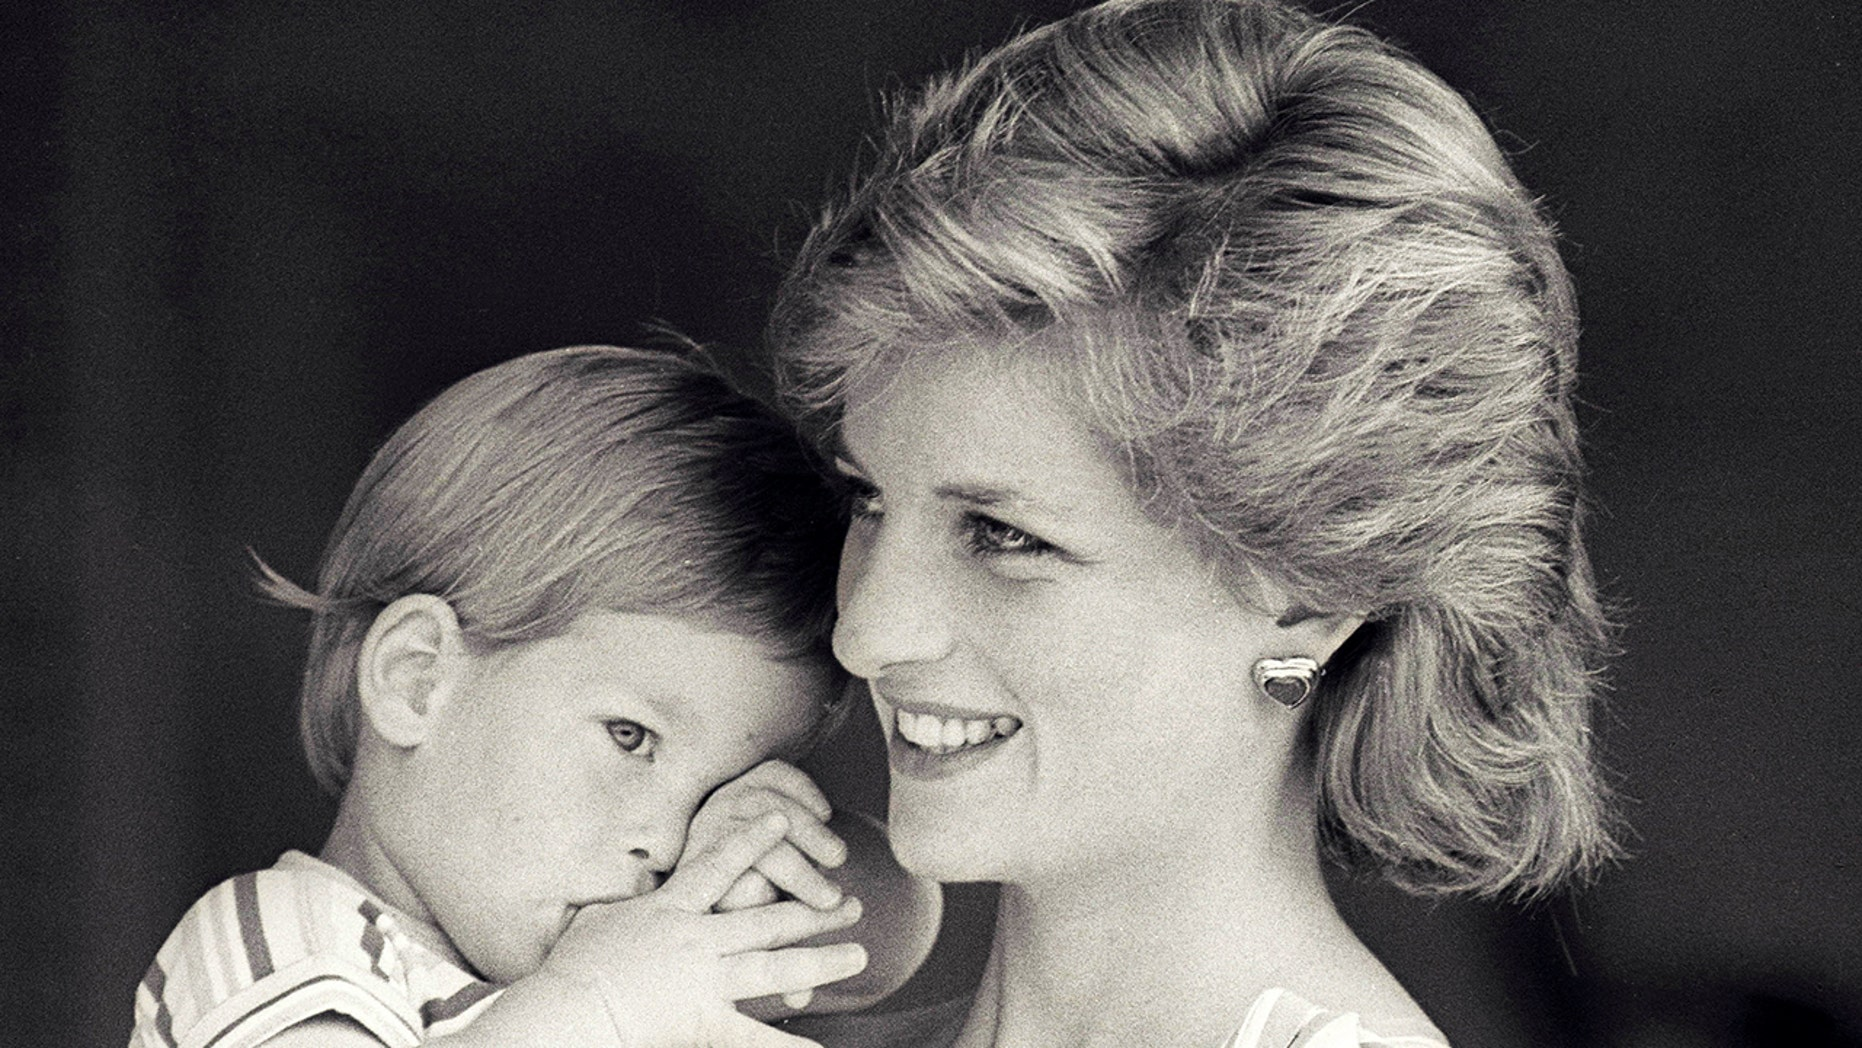 FILE PHOTO - Britain's Princess Diana holds Prince Harry during a morning picture session at Marivent Palace, where the Prince and Princess of Wales are holidaying as guests of King Juan Carlos and Queen Sofia, in Mallorca, Spain August 9, 1988.    REUTERS/Hugh Peralta/File Photo - RTX2XMBU